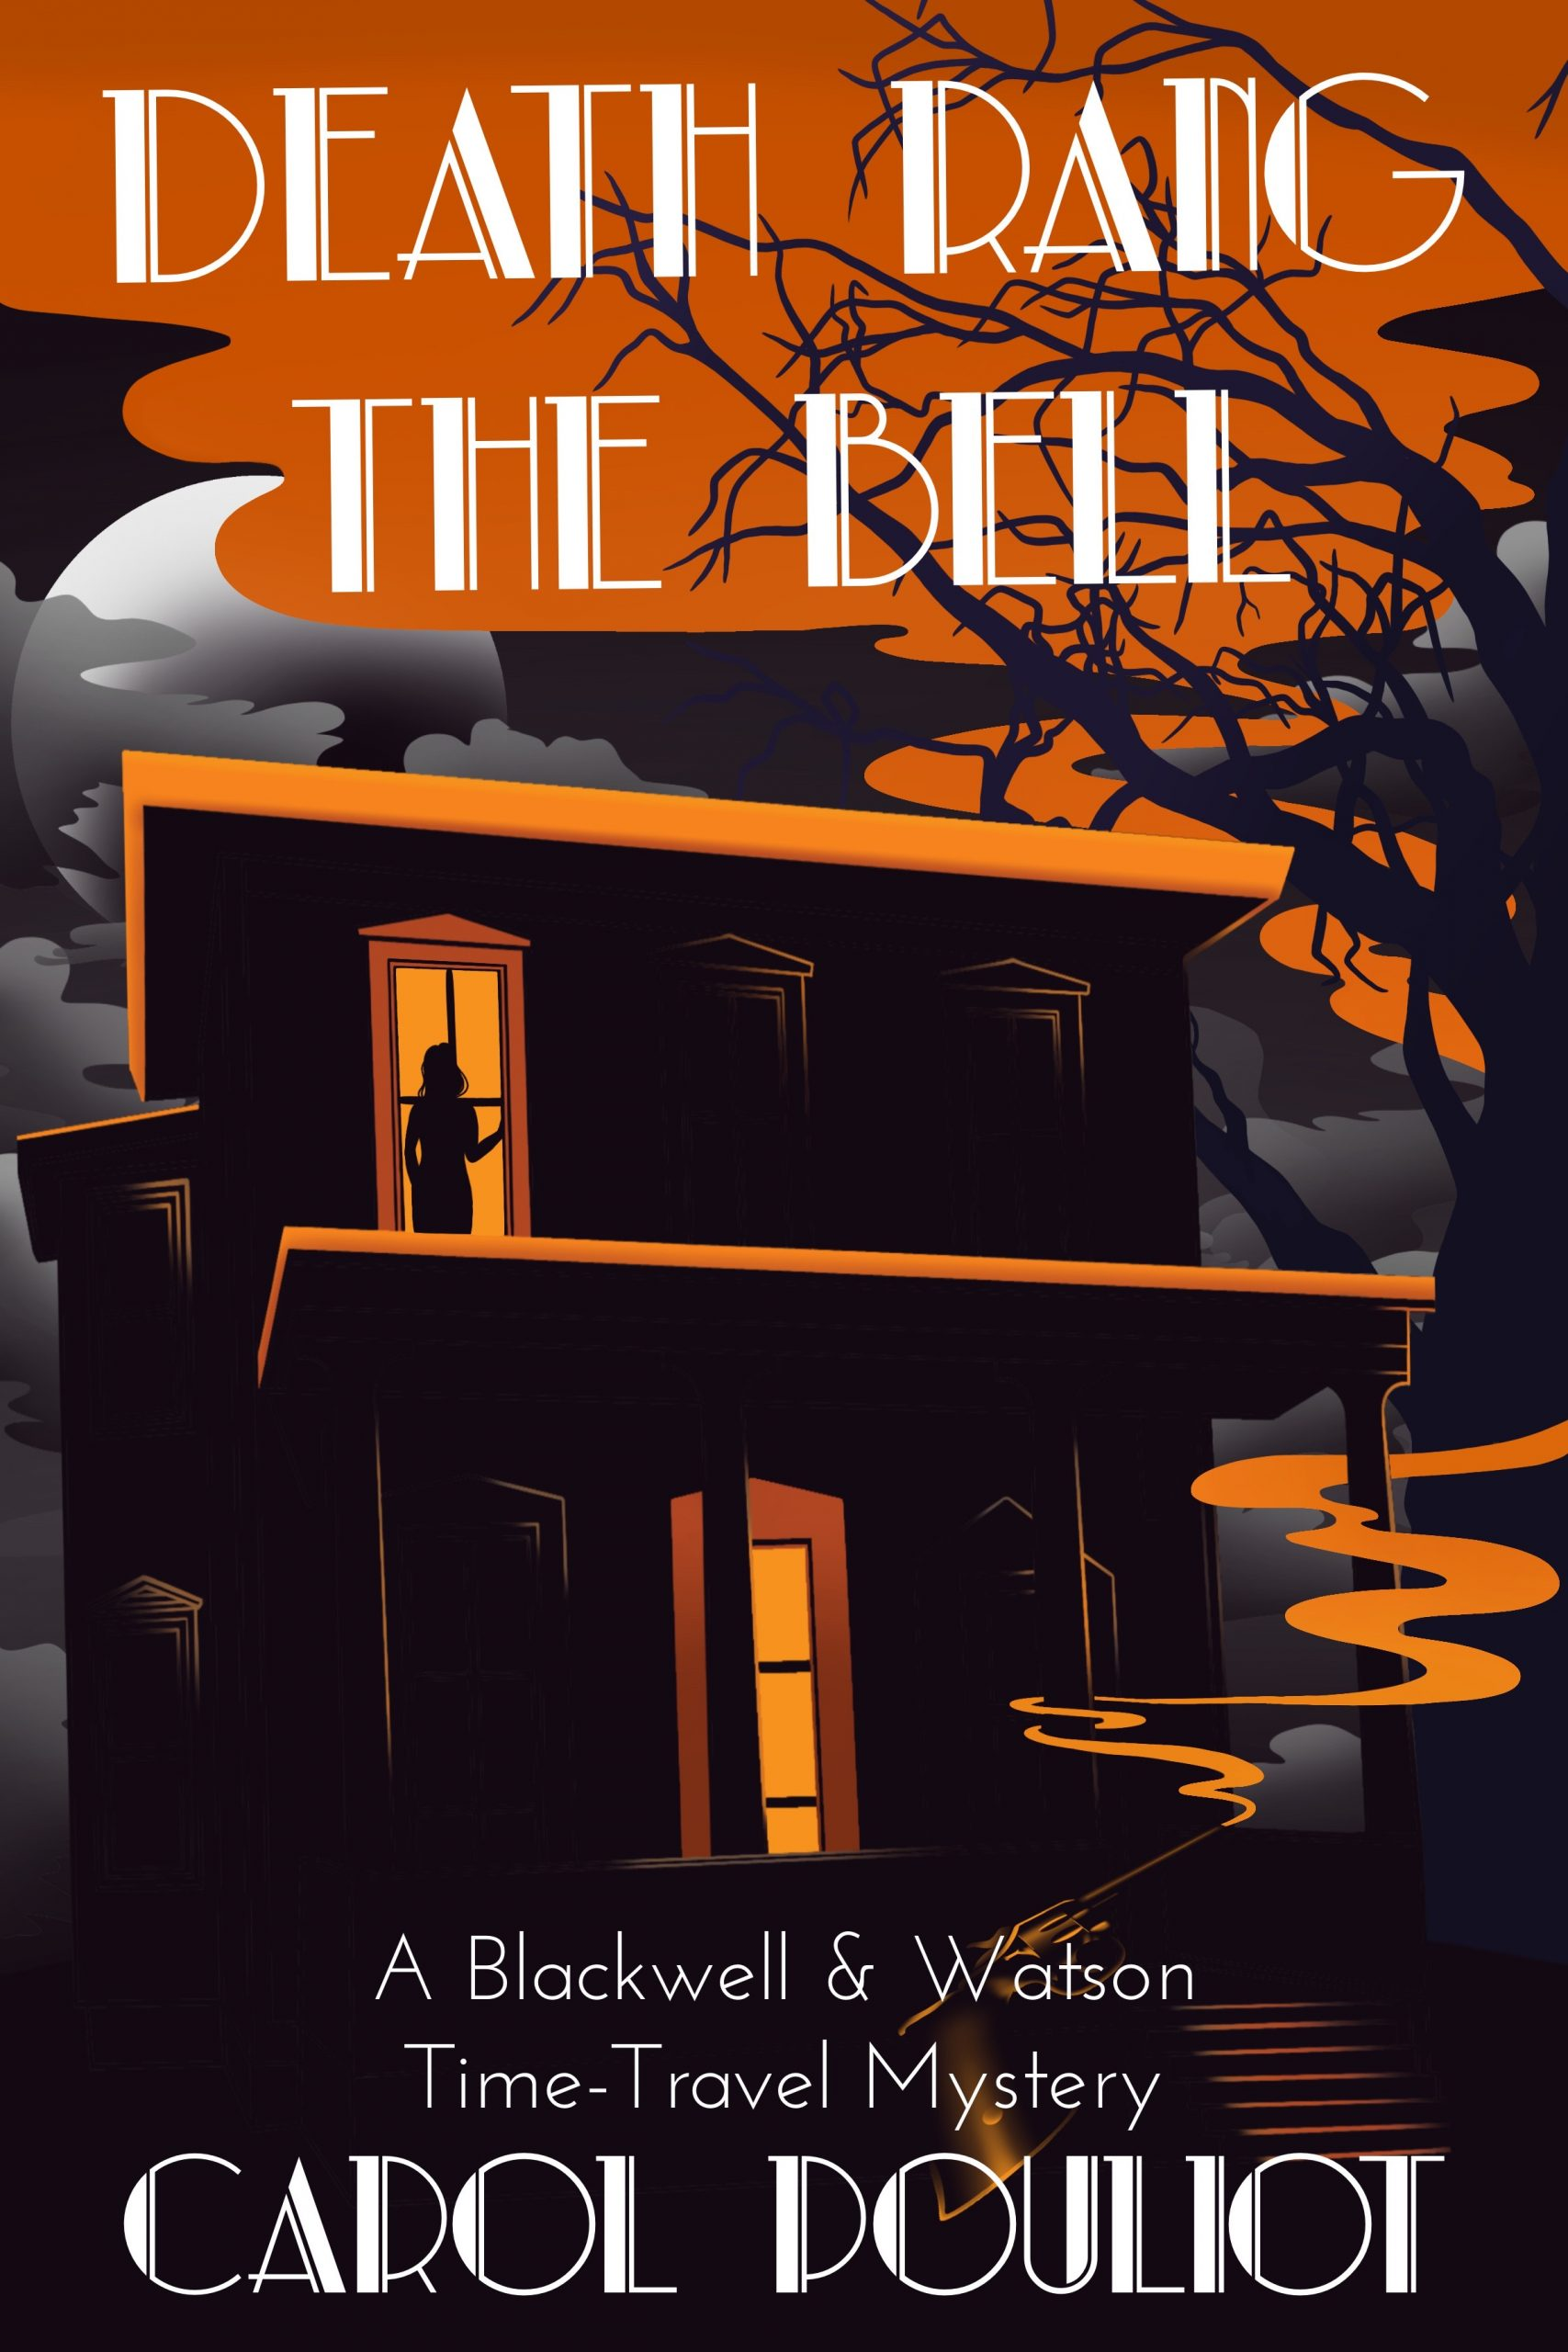 Death Rang The Bell by Carol Pouliot